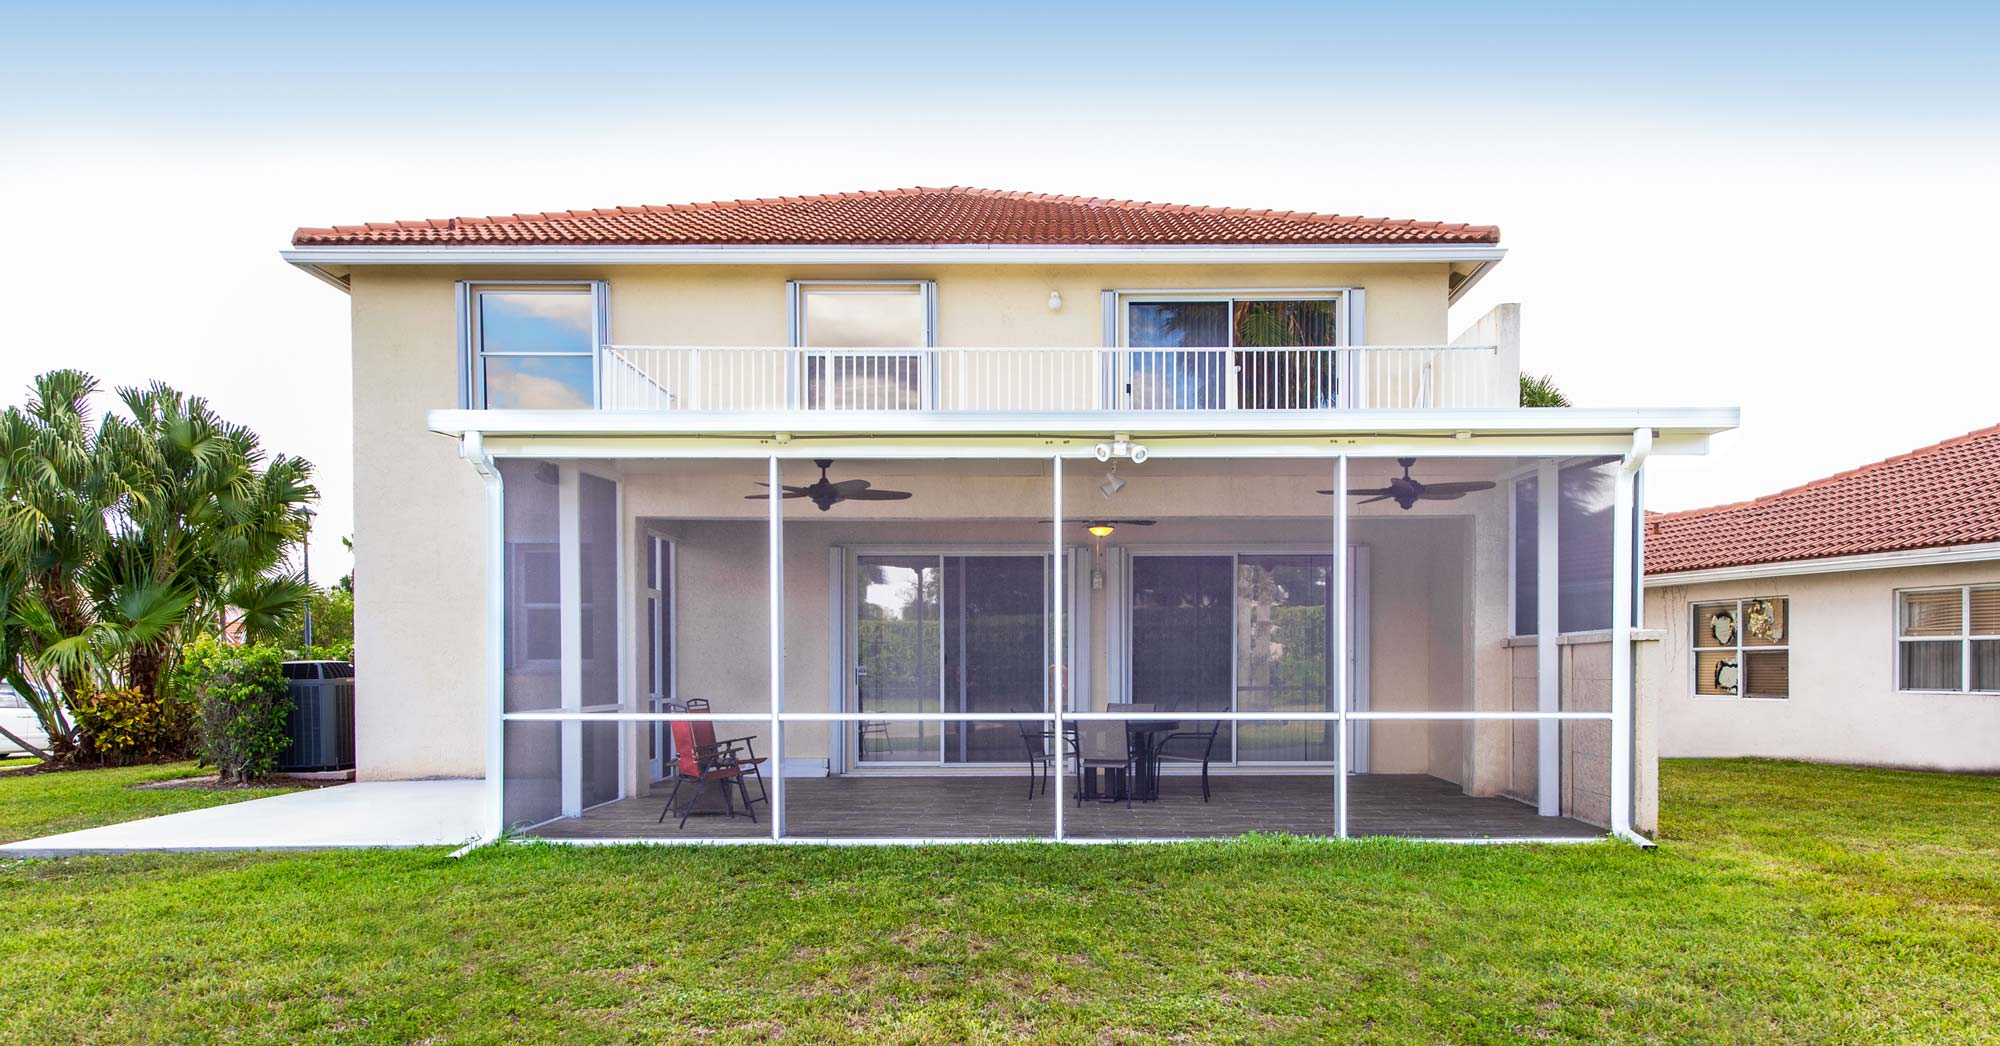 Insulated-Patio-Cover-with-Screen-Walls-creates-the-perfect-outdoor-florida-room.